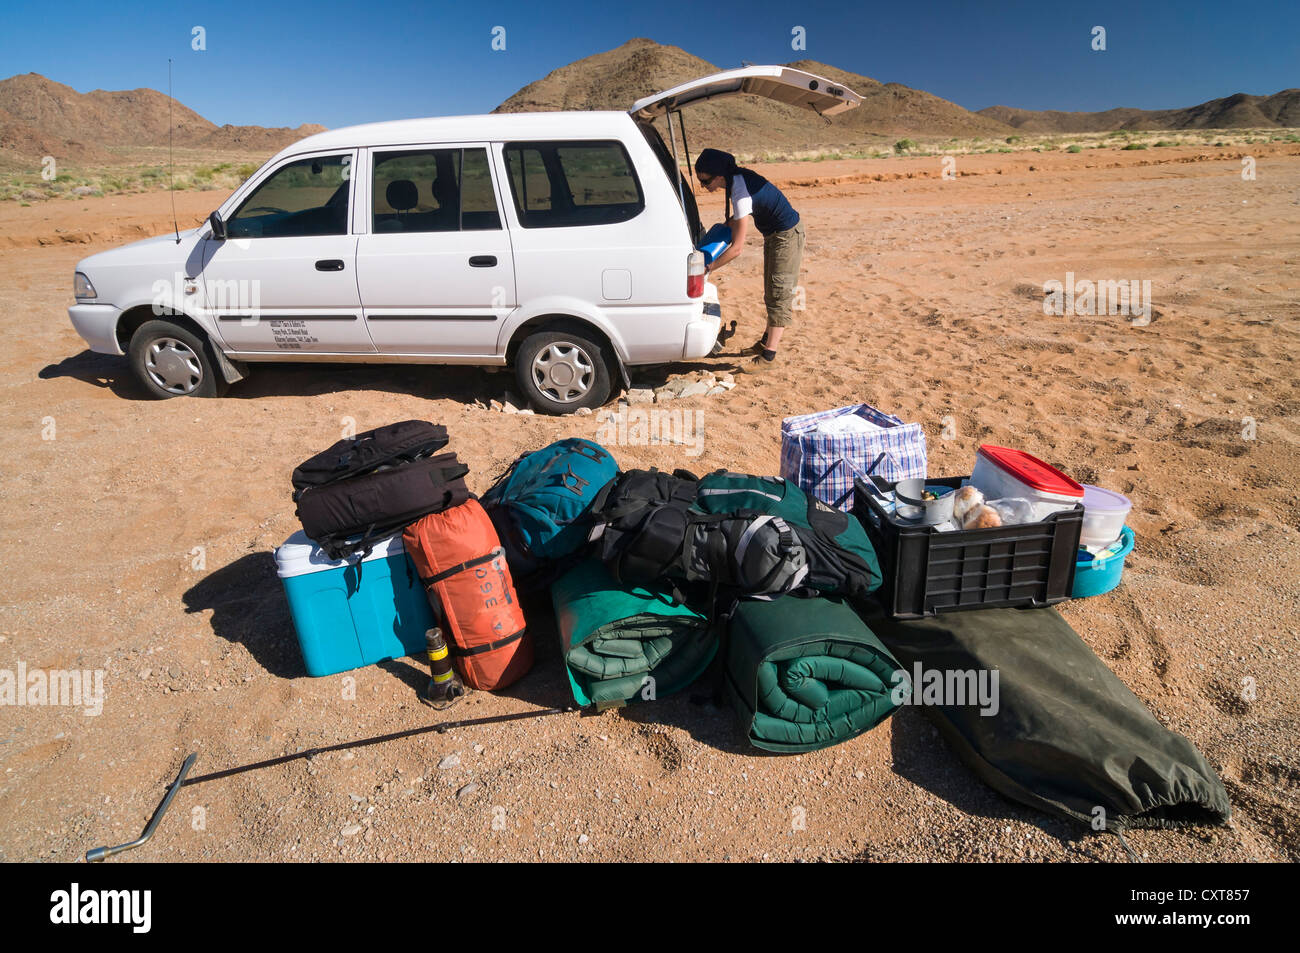 Baggage in front of a car which is stuck in the sand, Richtersveld National Park, Northern Cape, South Africa, Africa - Stock Image